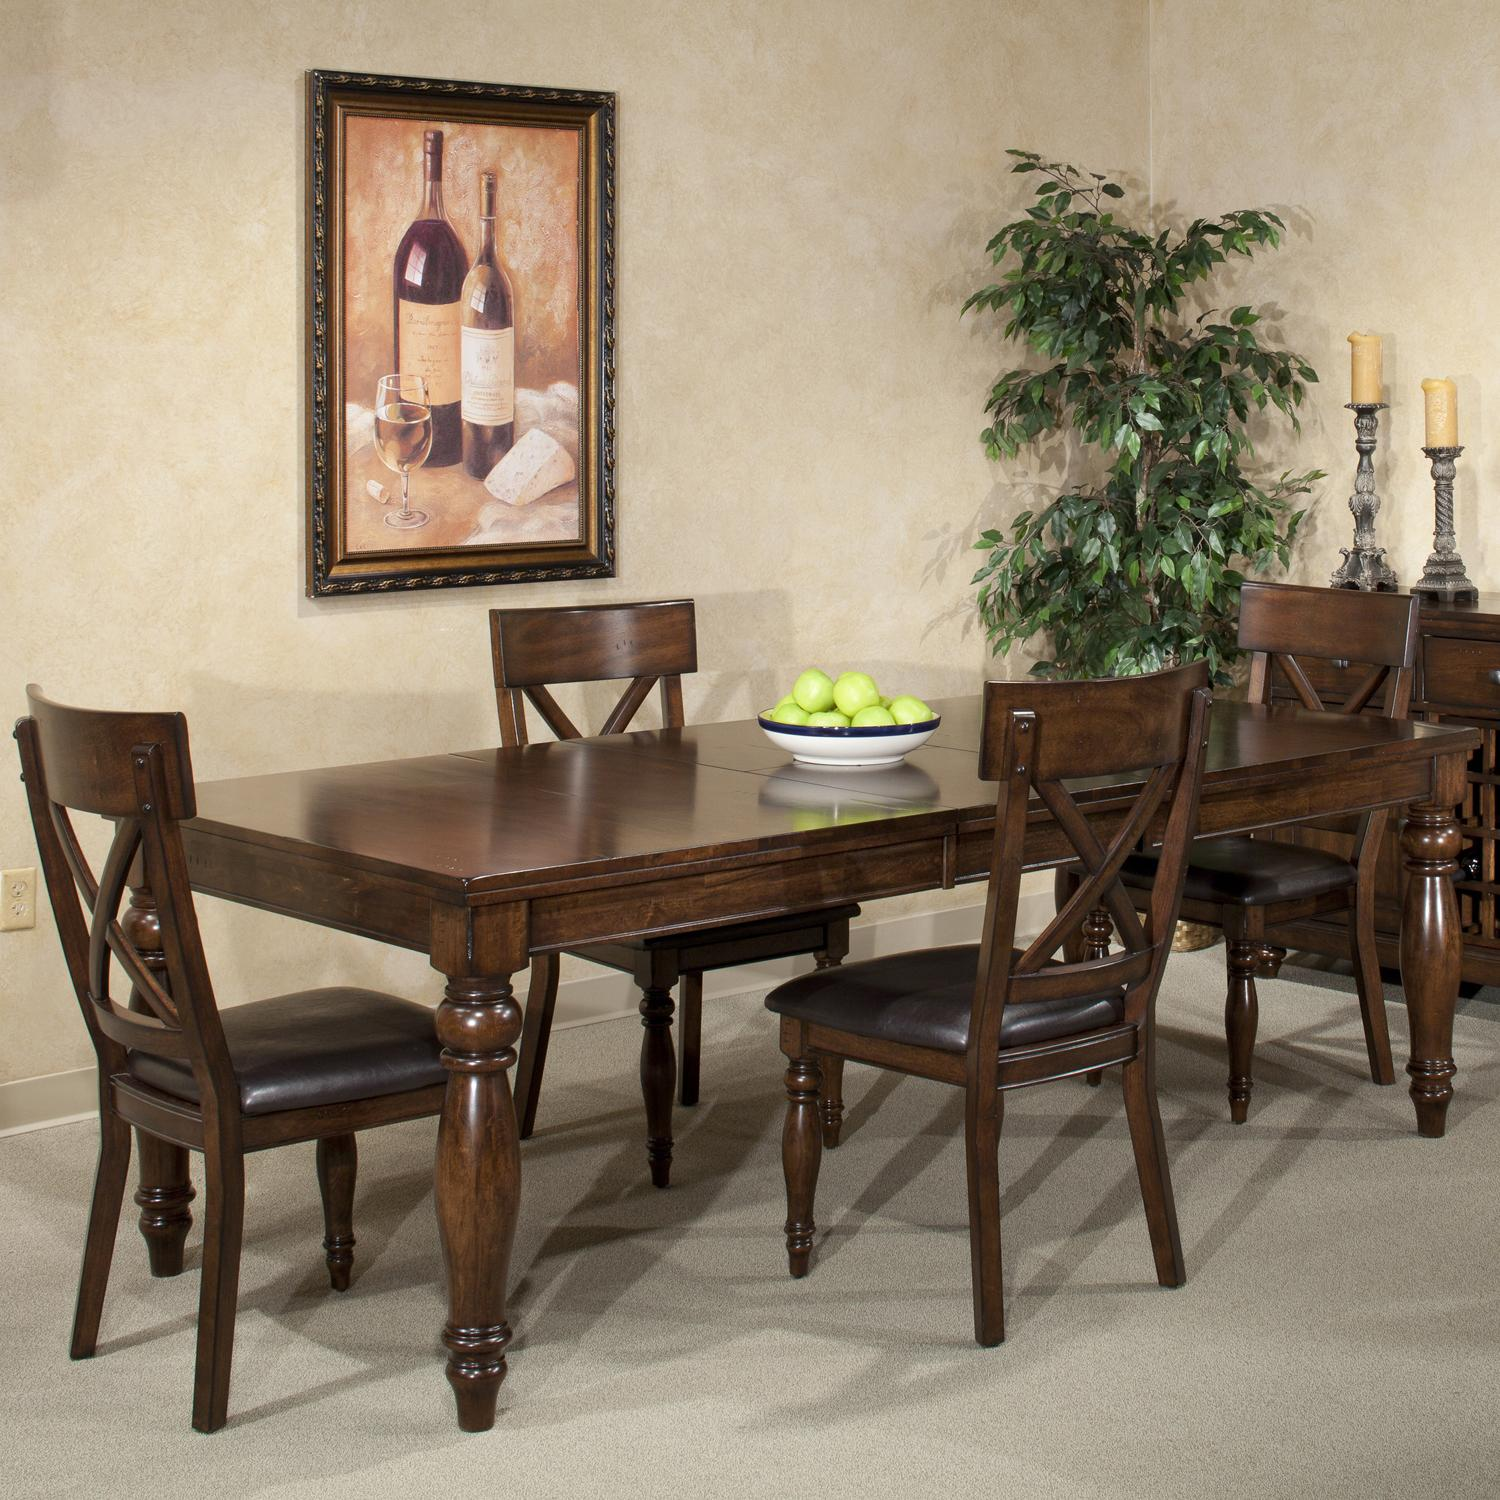 Intercon Kingston  5 Piece Dining Set - Item Number: KG-TA-4290B-RAI-C+4xCH-735C-RAI